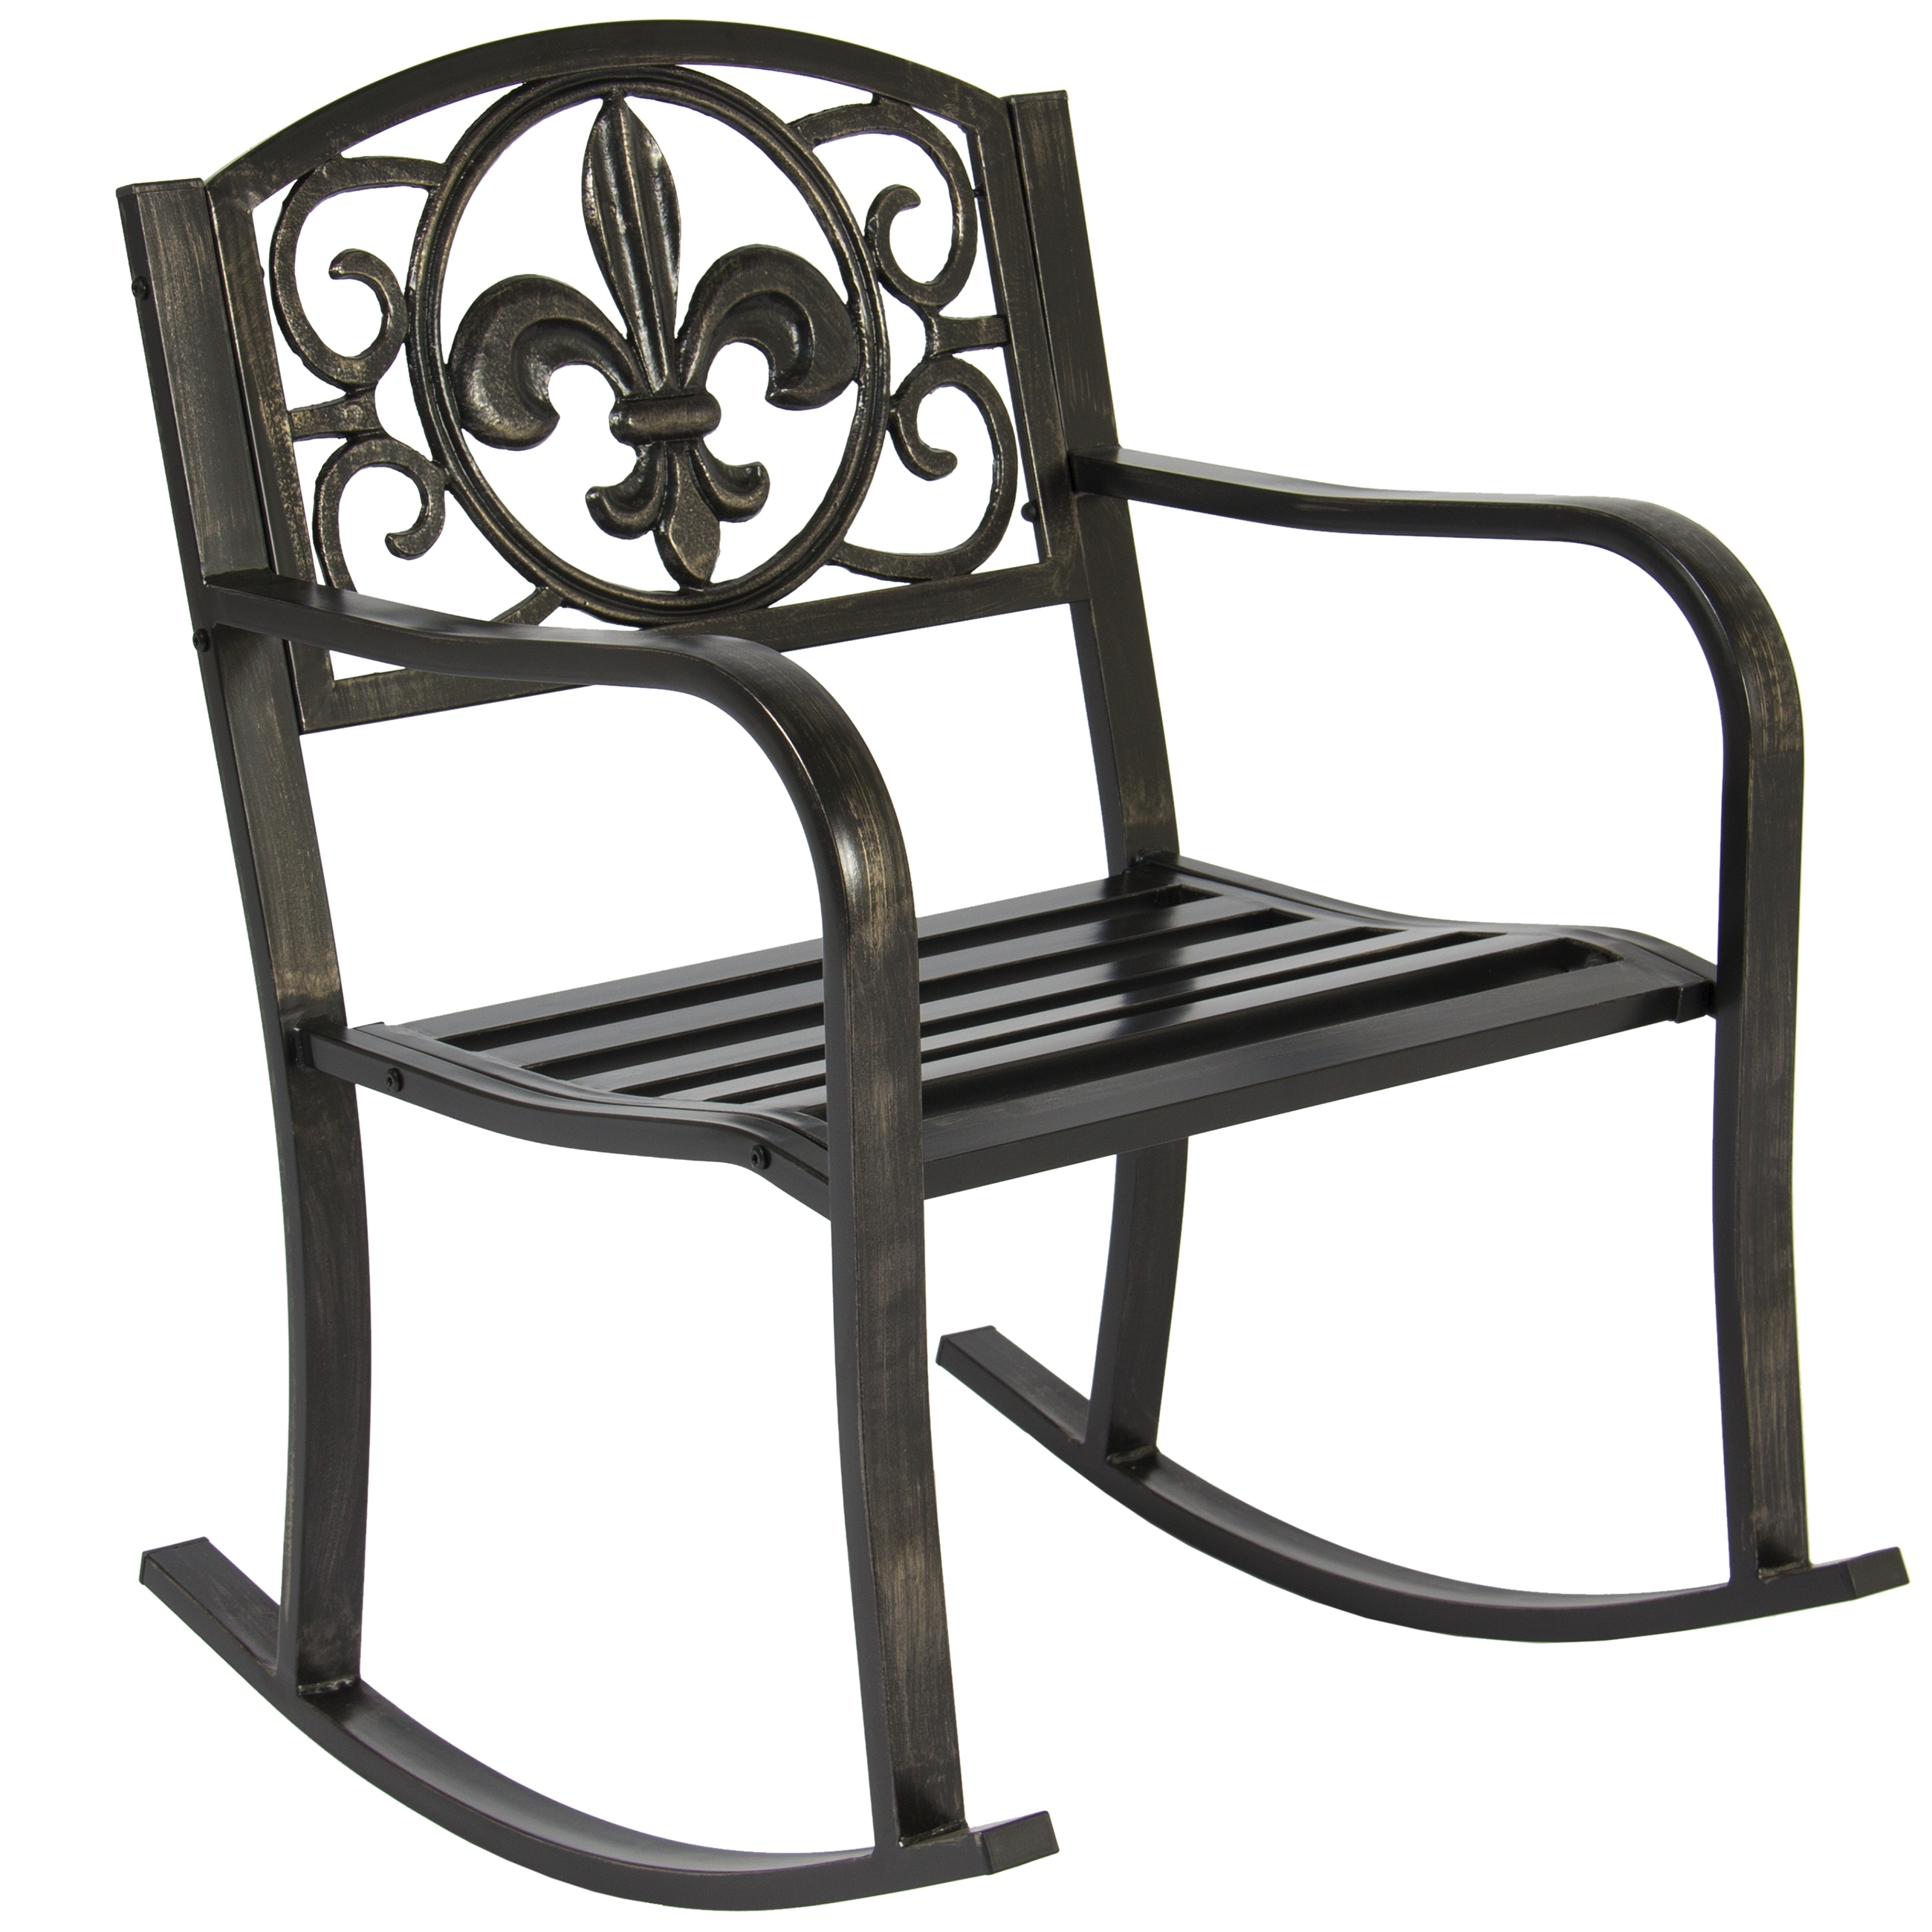 Best Choice Products Metal Rocking Chair Seat For Patio, Porch, Deck Regarding Iron Rocking Patio Chairs (#3 of 15)